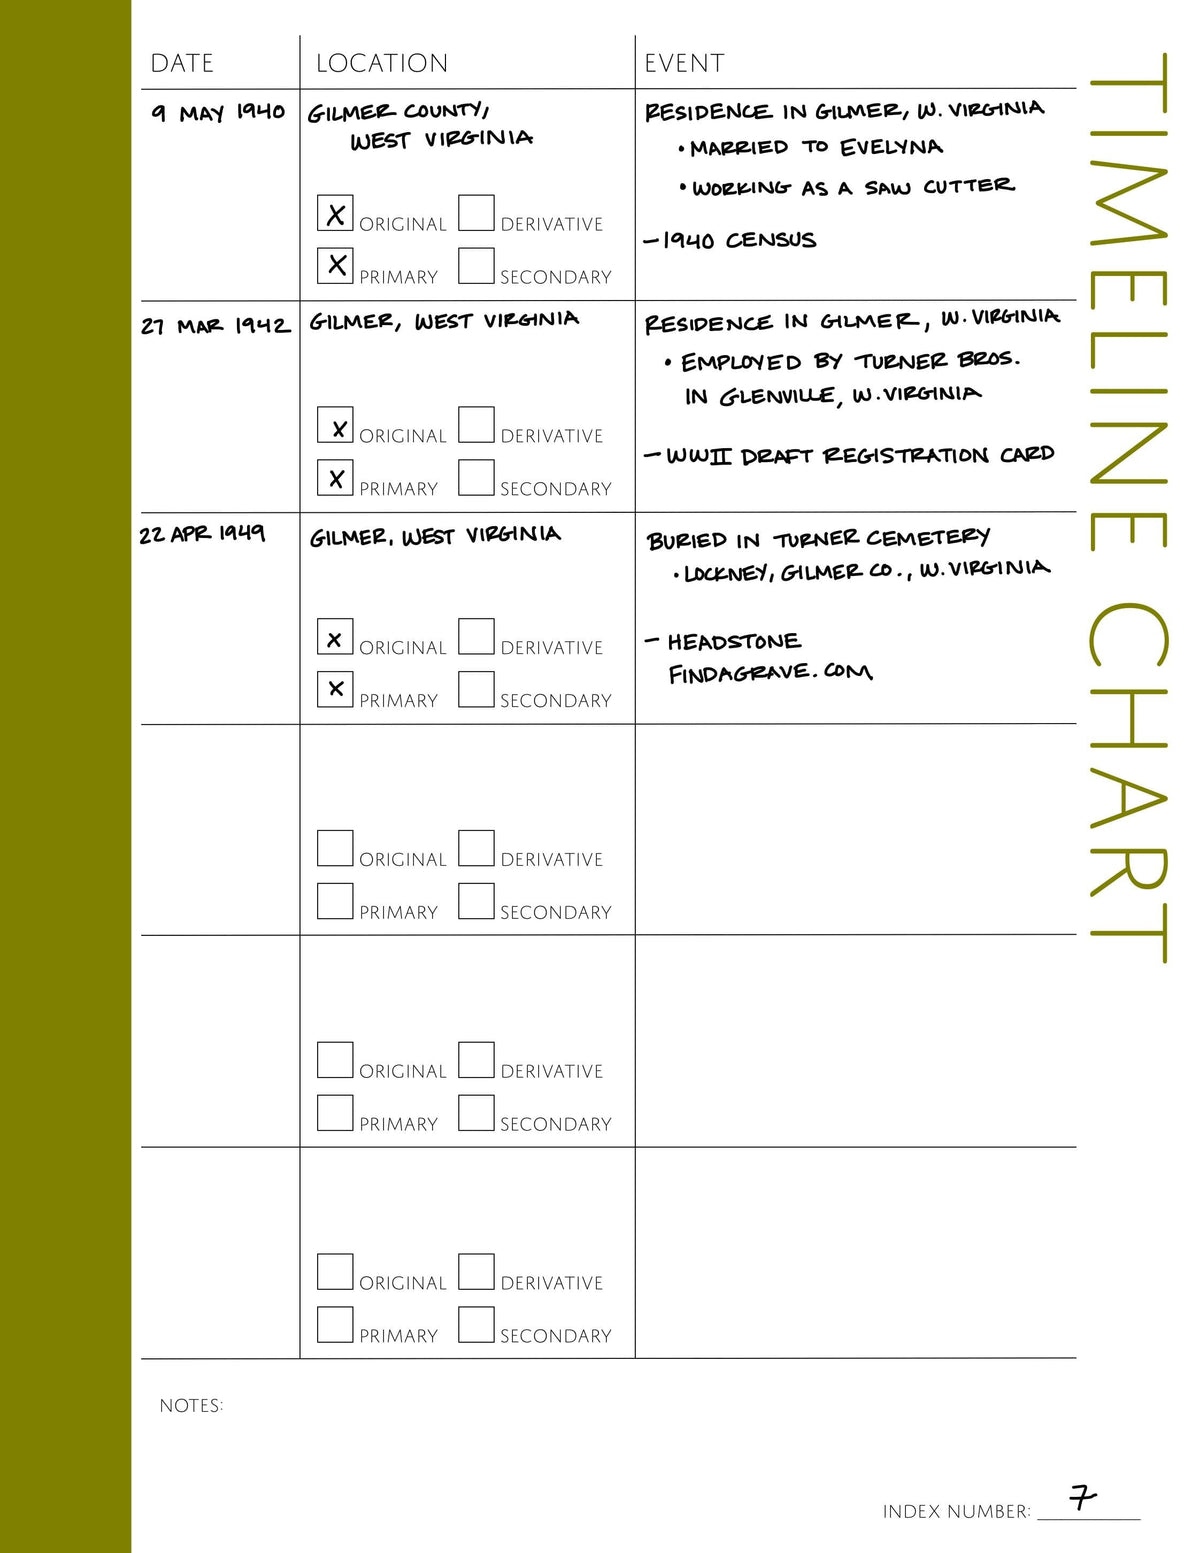 Timeline Chart: Printable Genealogy Form for Family History Binder (Digital Download)